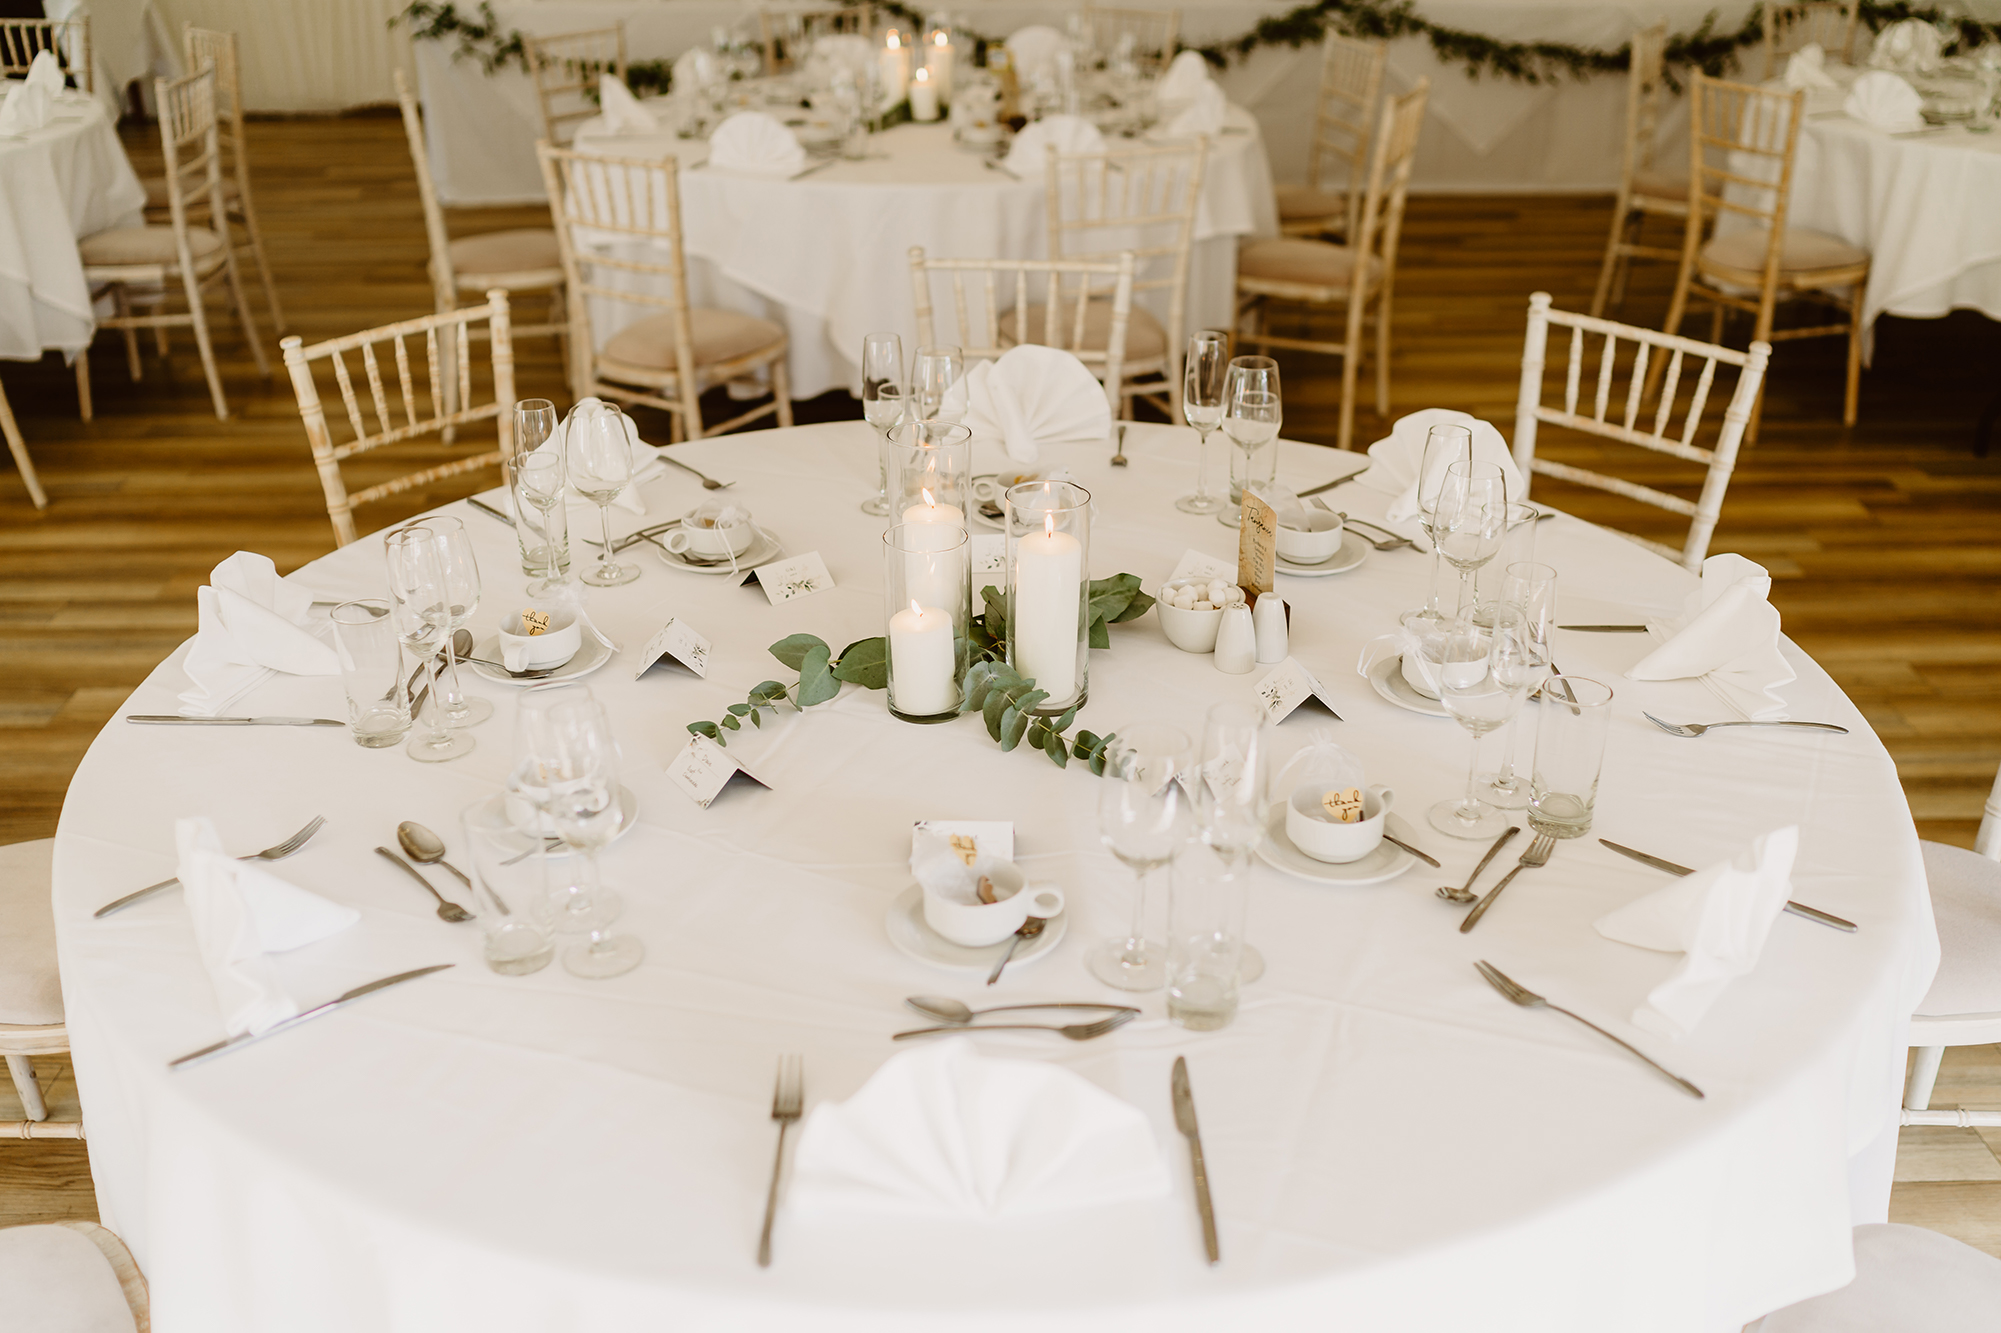 Wedding Table With Eucalyptus Center Piece at Ivy House Country Hotel